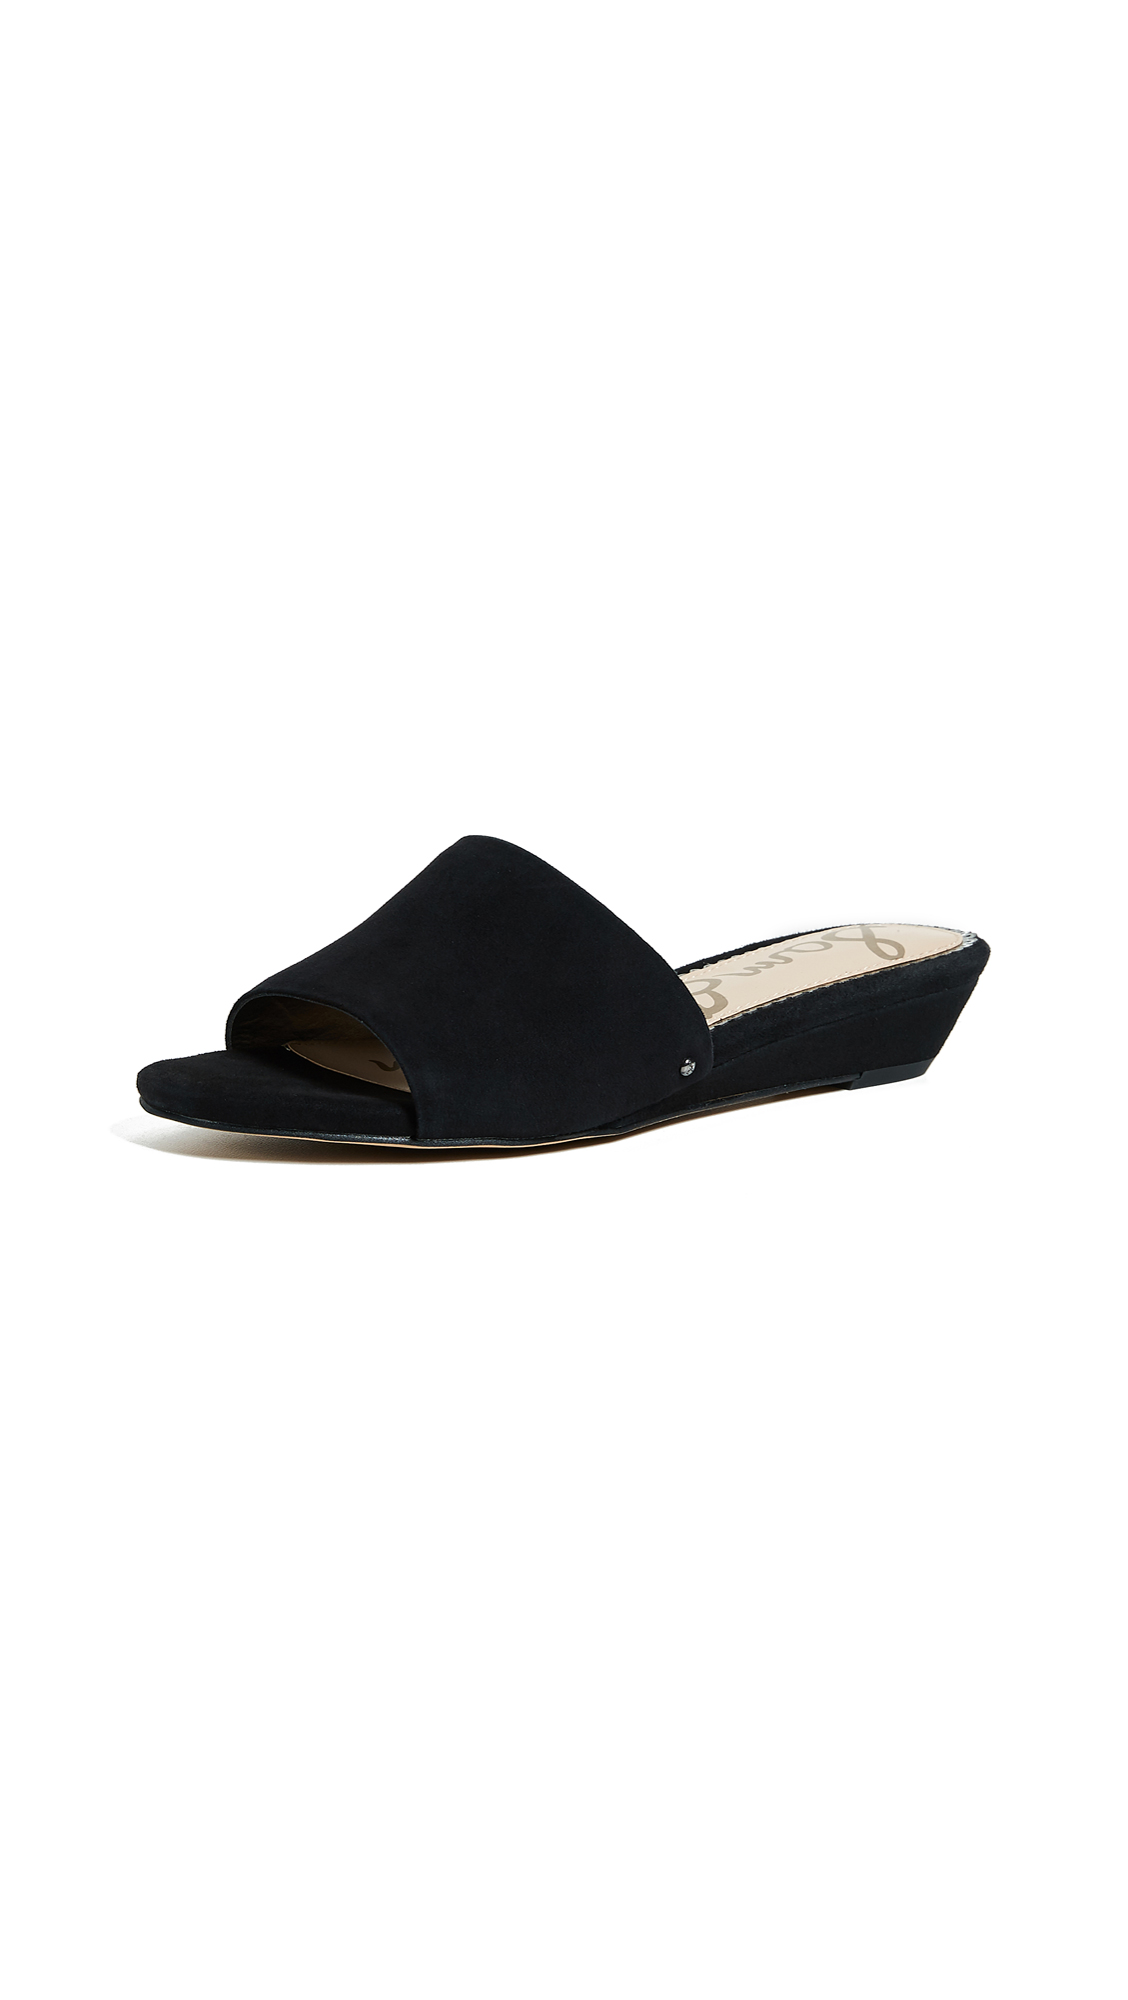 Sam Edelman Liliana Demi Wedge Slides - Black